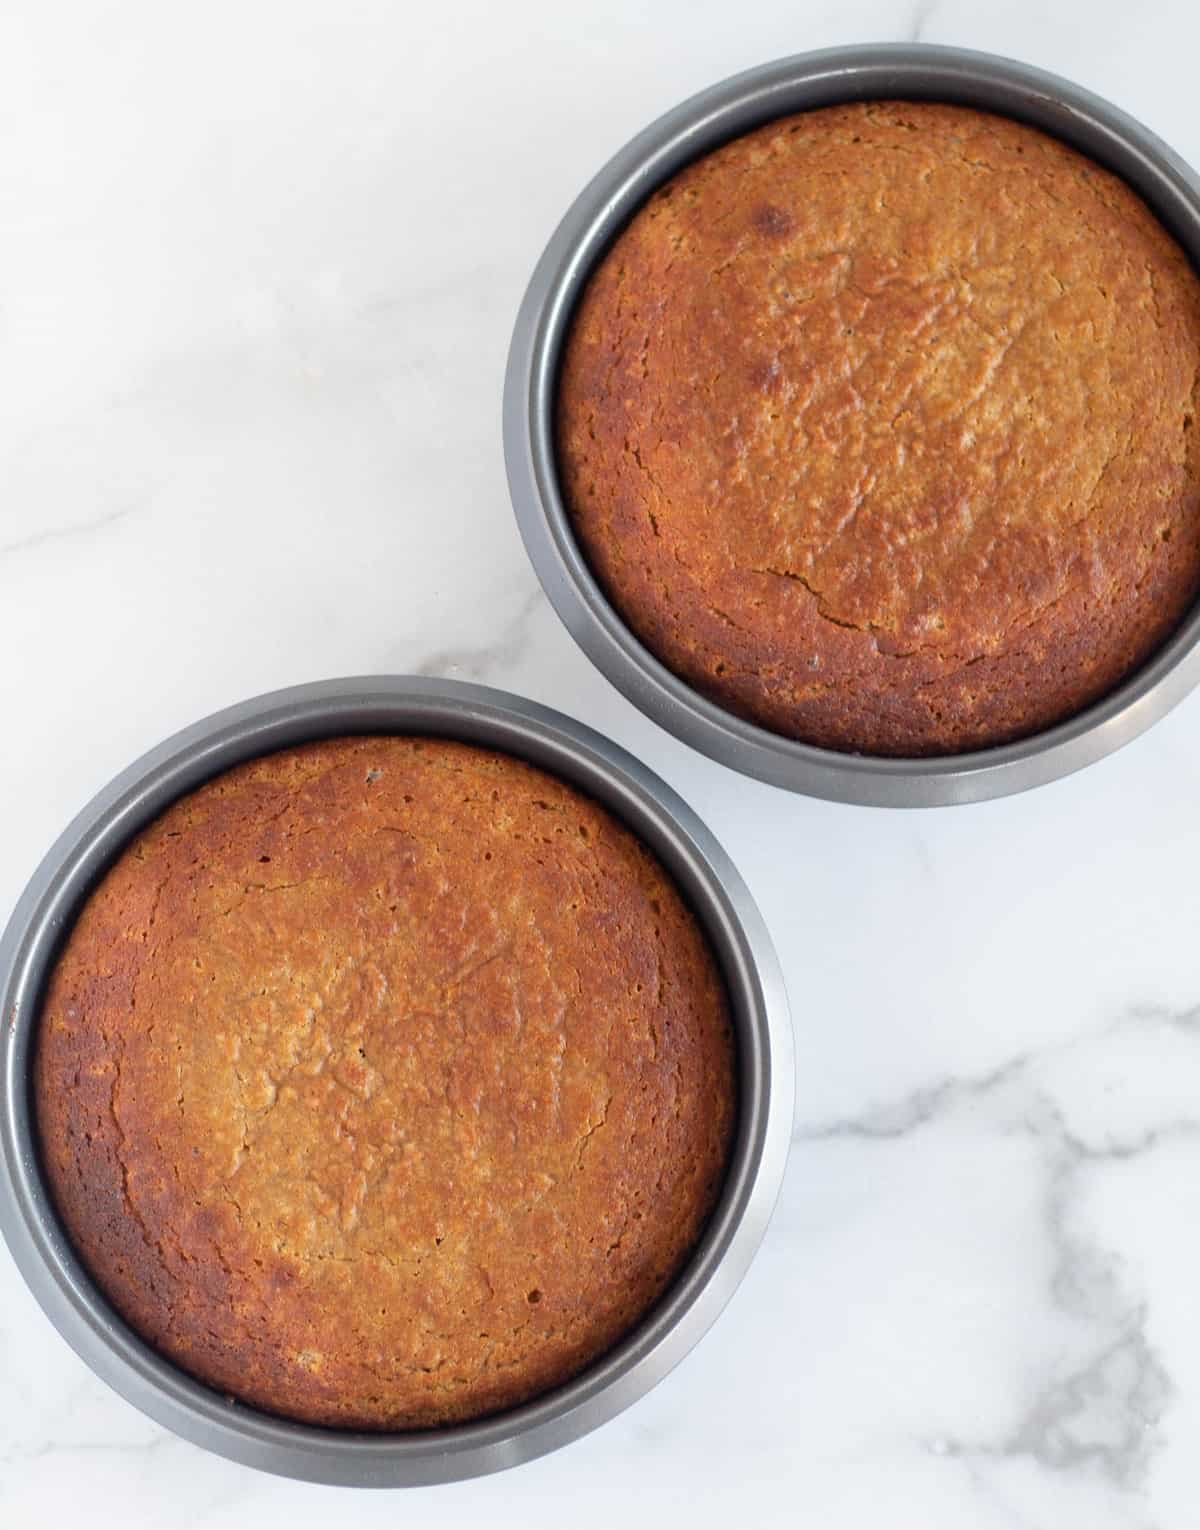 2 round baked cakes in pans